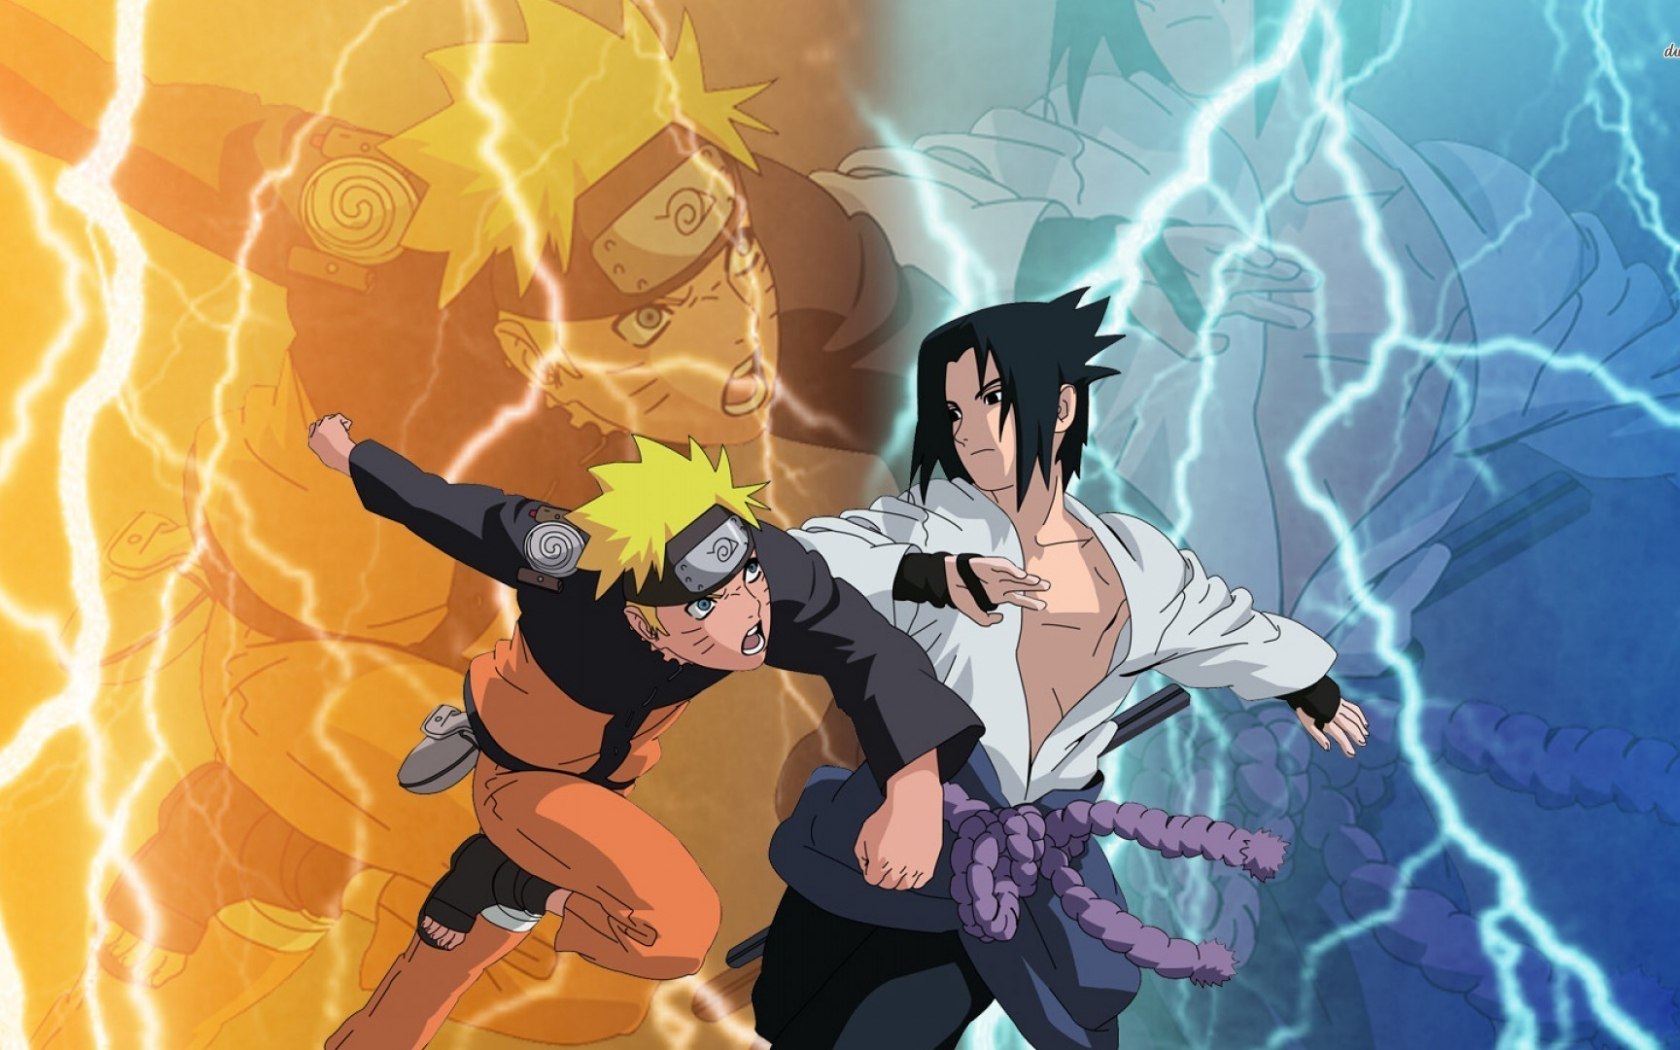 Free Download Naruto Vs Sasuke Wallpaper Hd 1920x1080 For Your